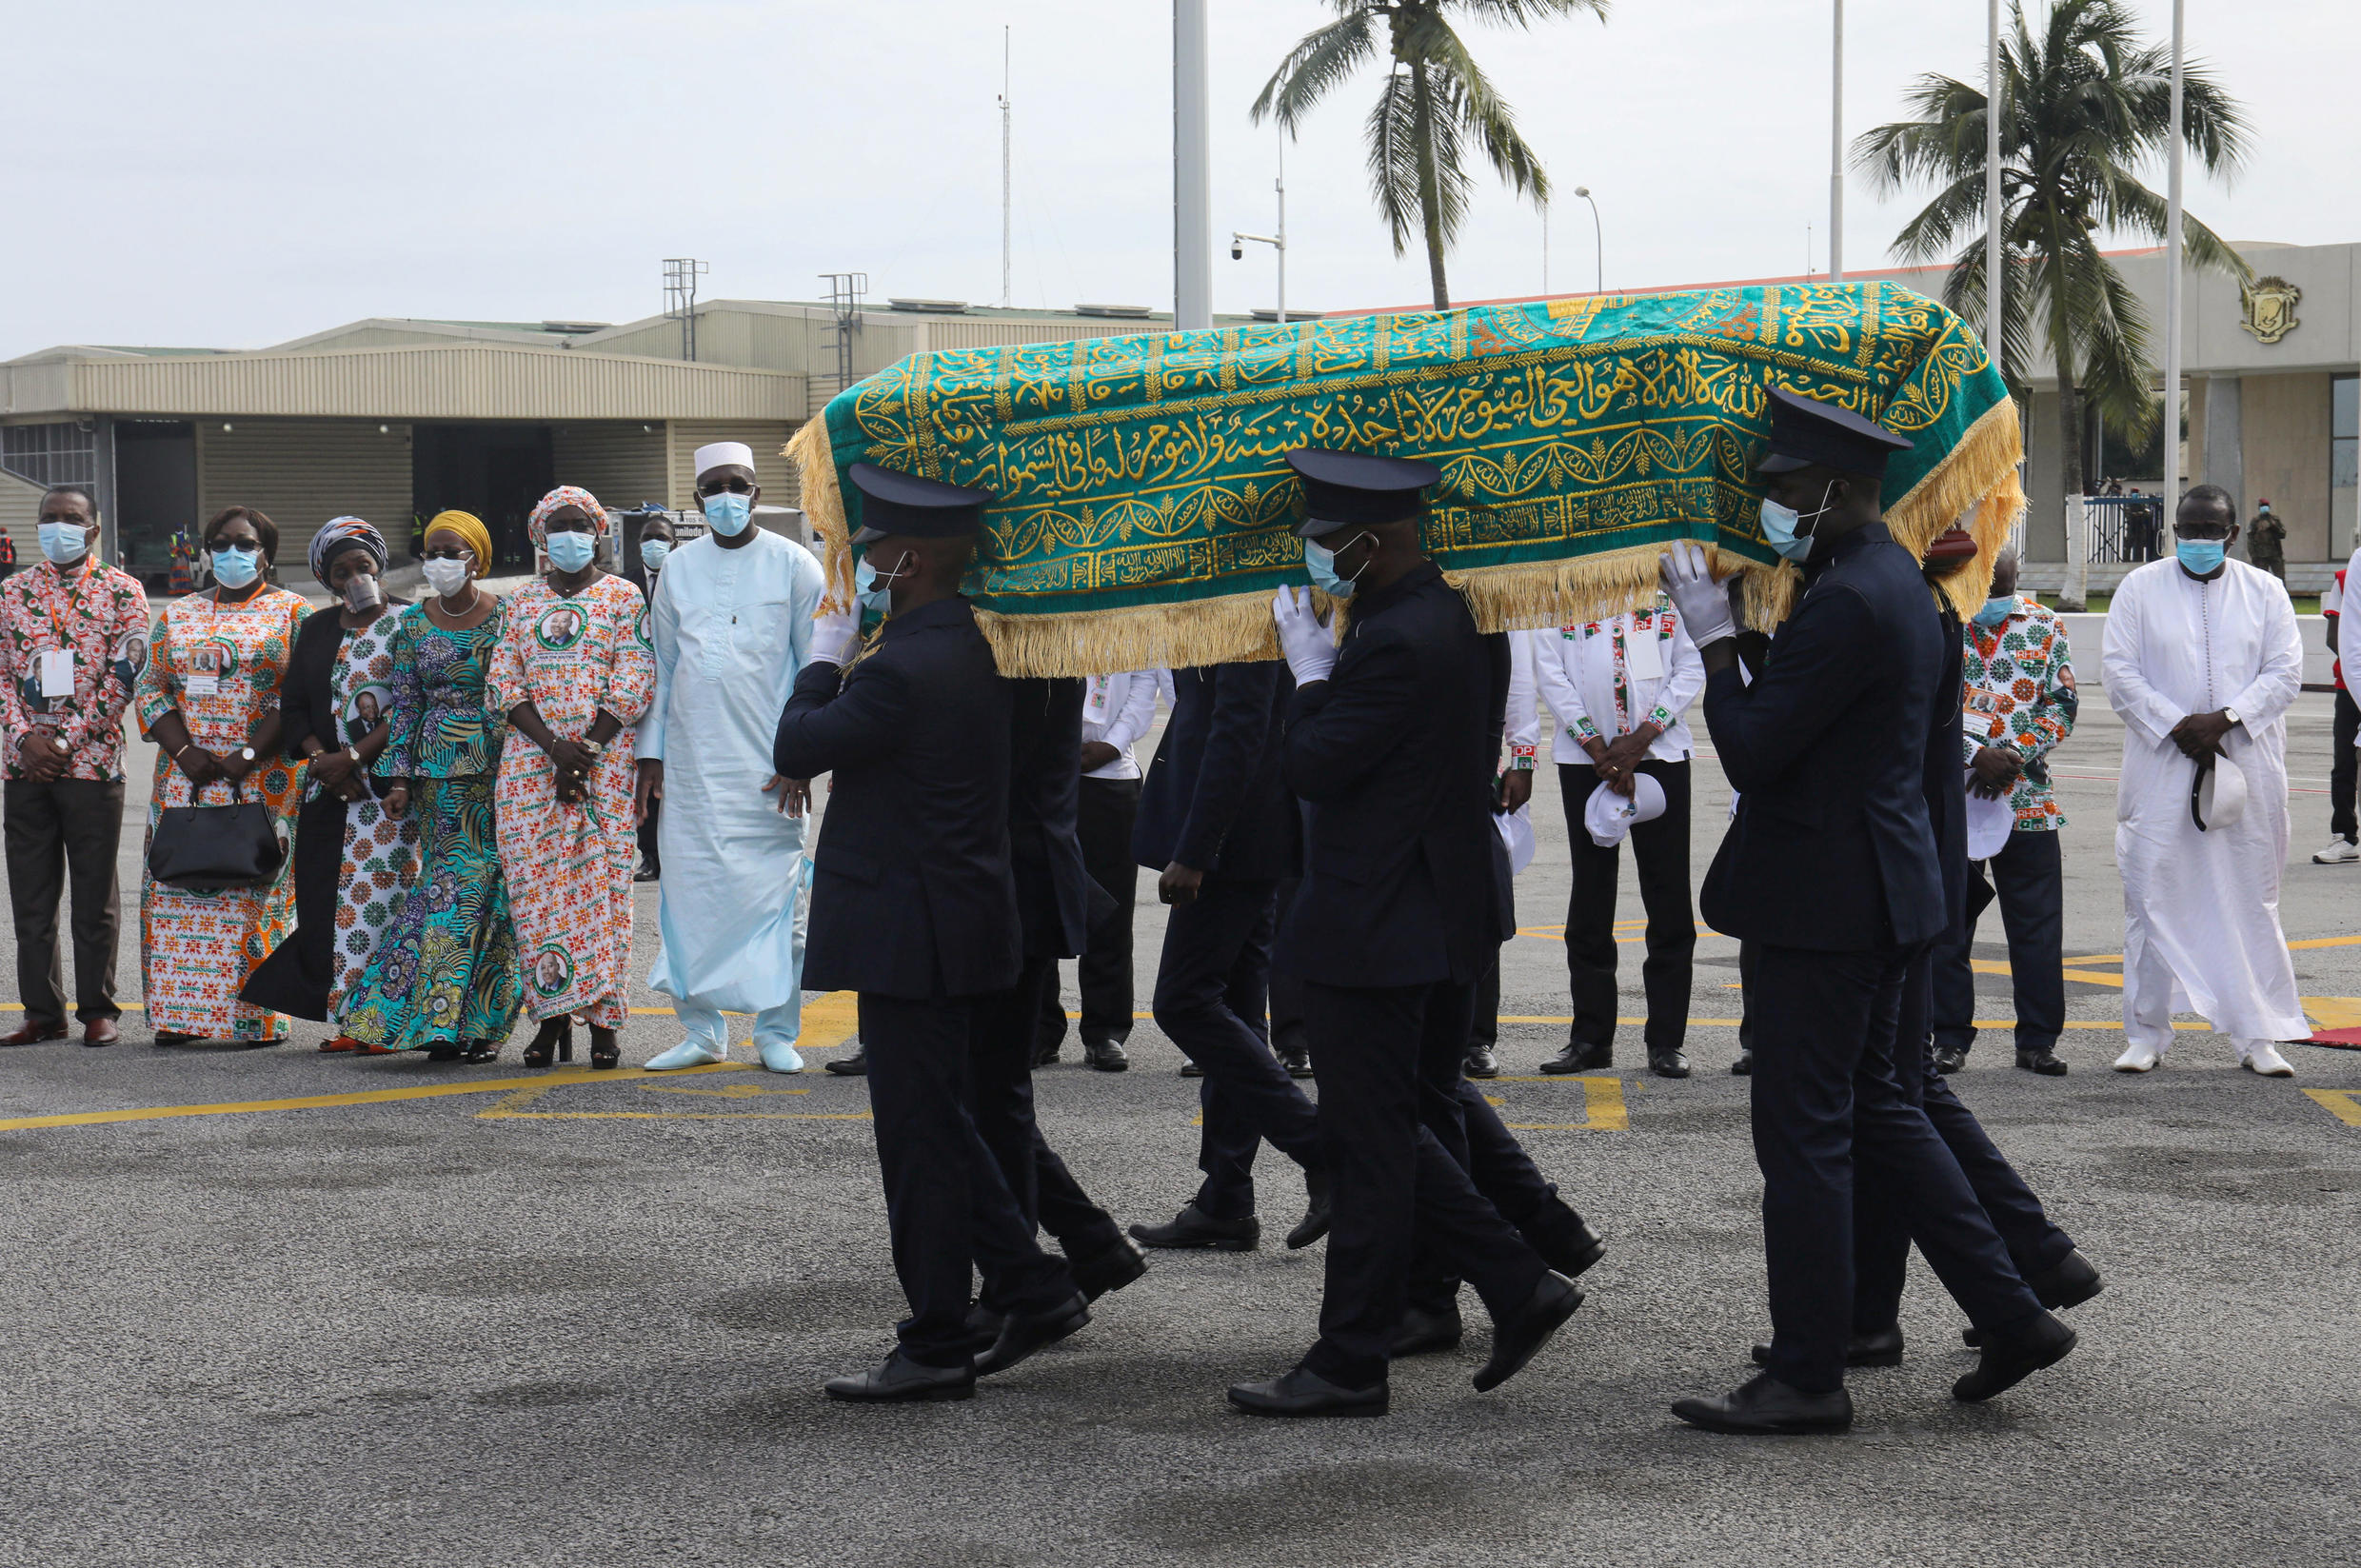 The remains of Ivorian Prime Minister Amadou Gon Coulibaly are transported to Felix Houphouet Boigny airport for transfer to his native village of Korhogo on July 15, 2020.